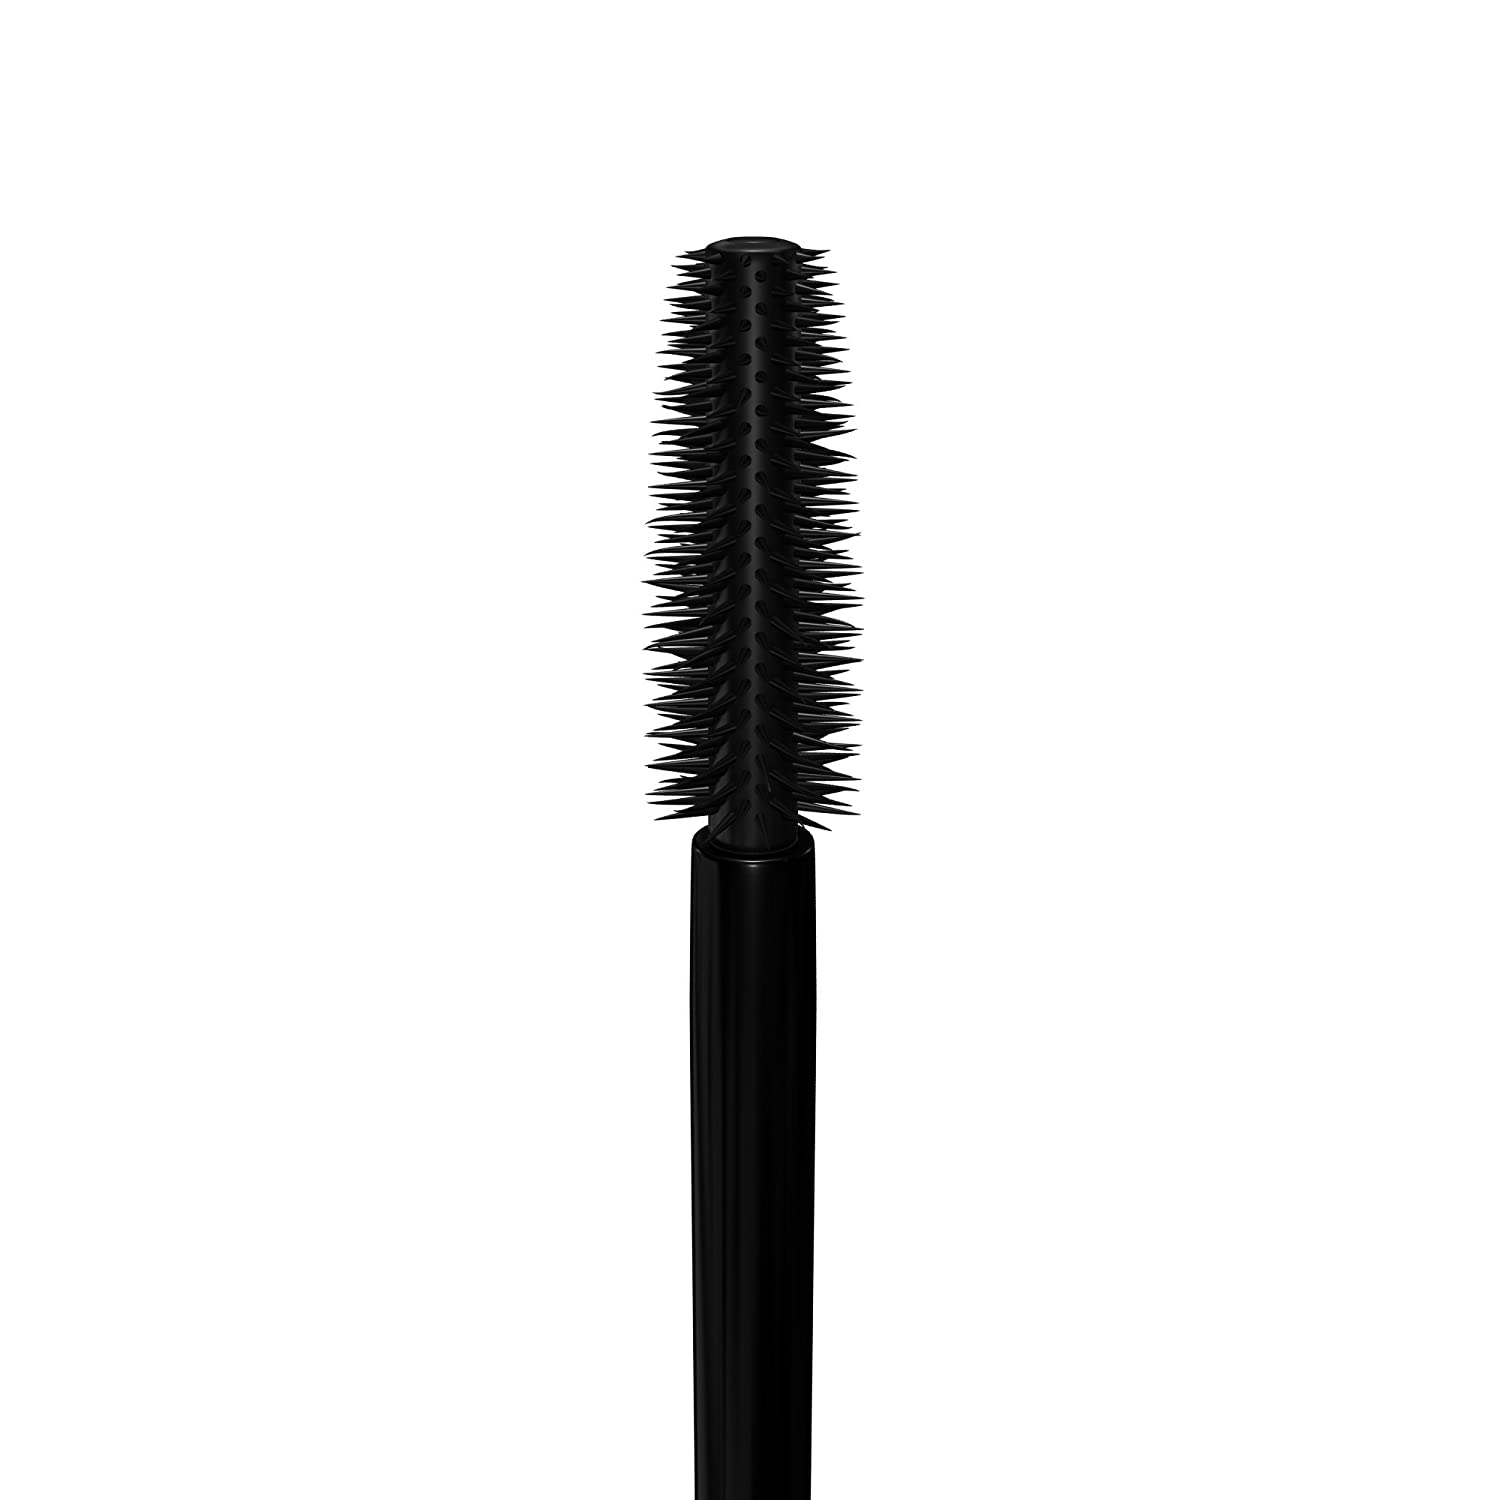 CoverGirl Lashblast 24 Hour Mascara, Very Black 800, 0.44 Fluid Ounce by CoverGirl: Amazon.es: Belleza